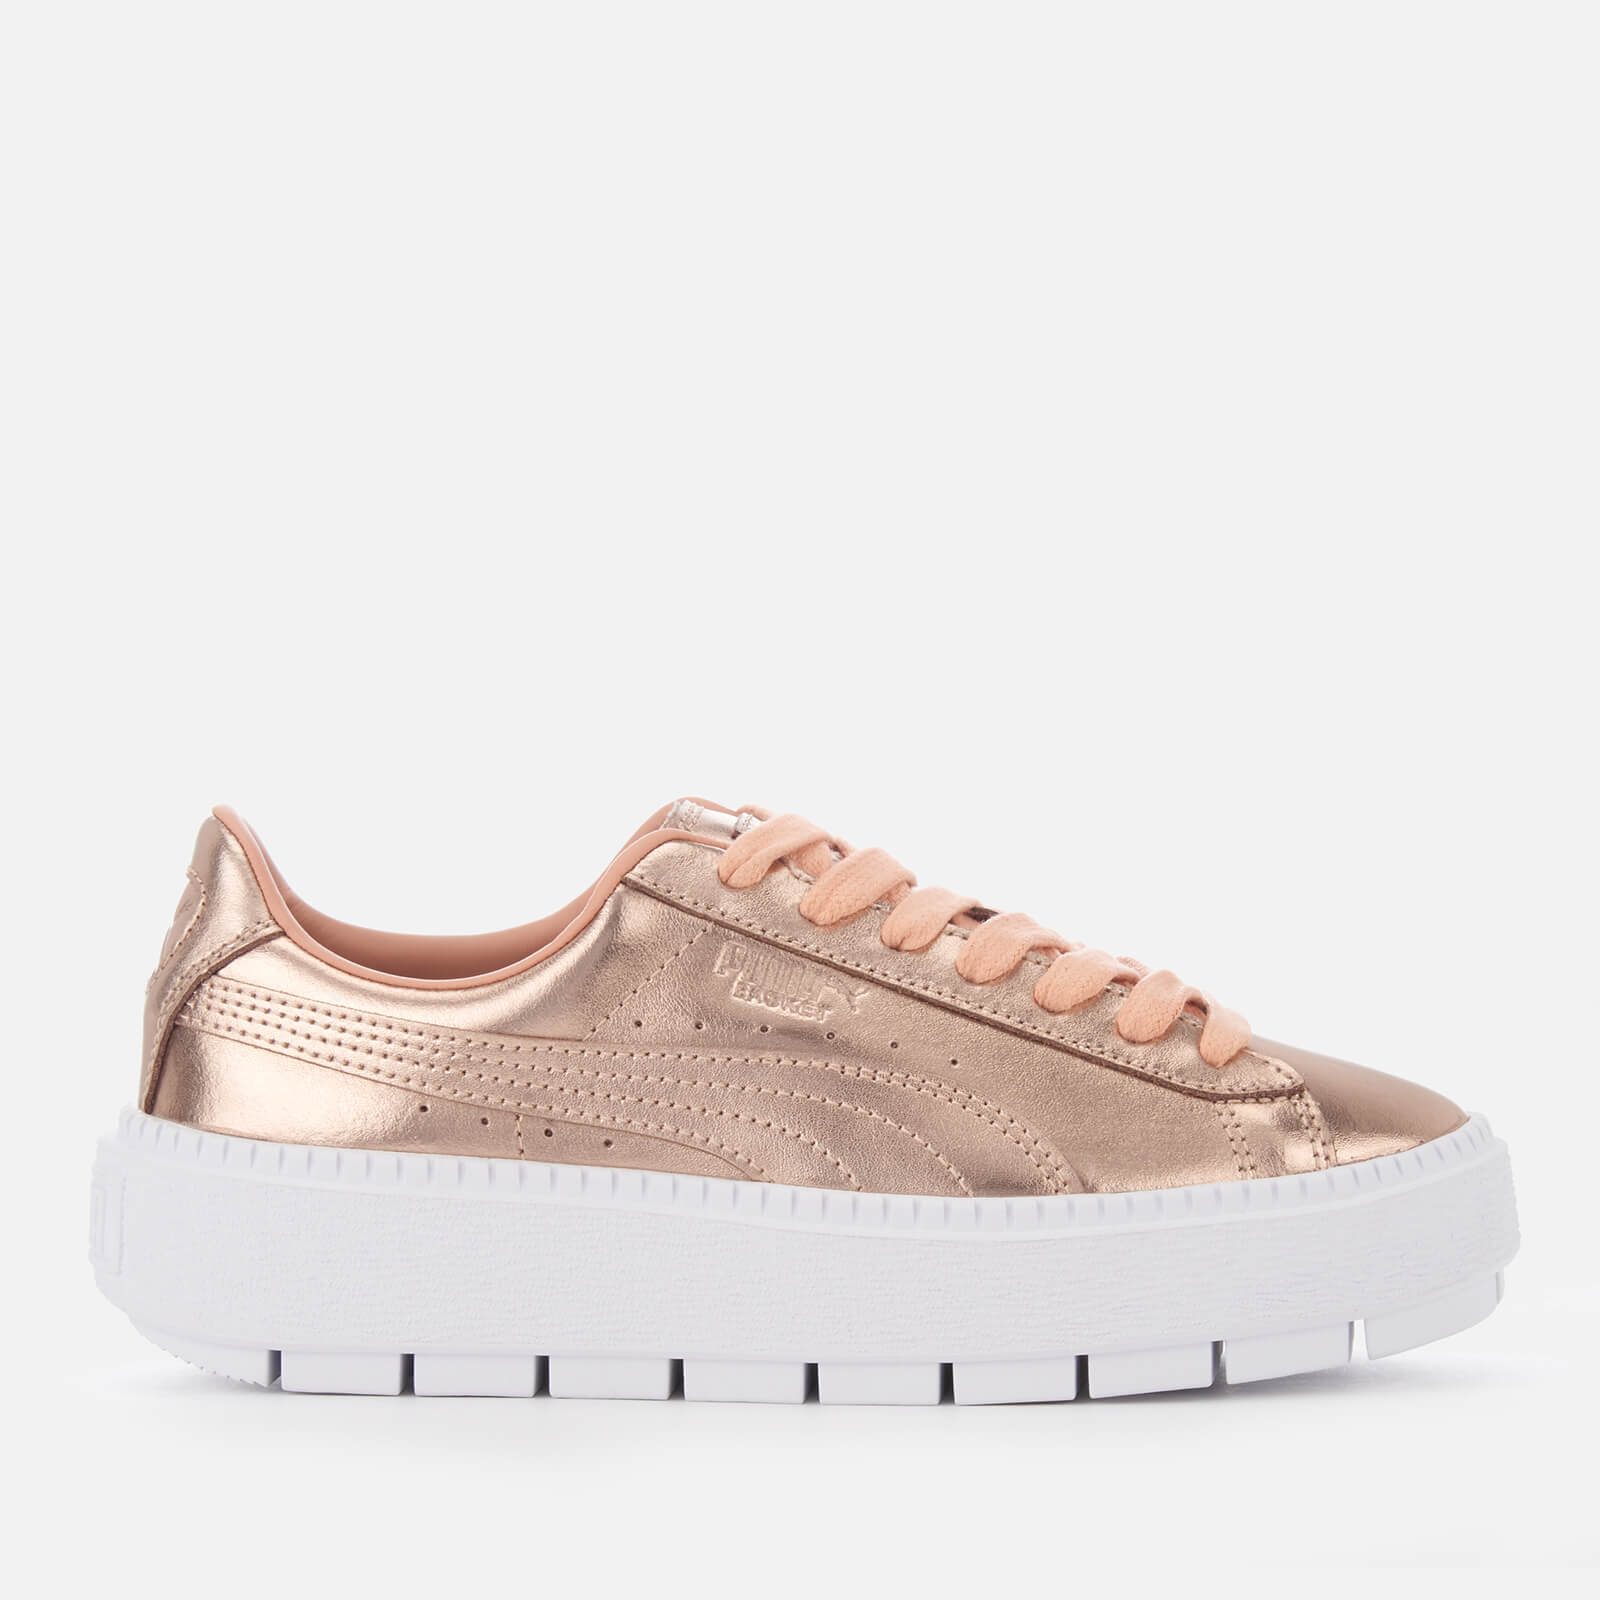 Puma Women's Trace Basket Platform Trainers - Dusty Coral/Puma White - UK 8 - Gold